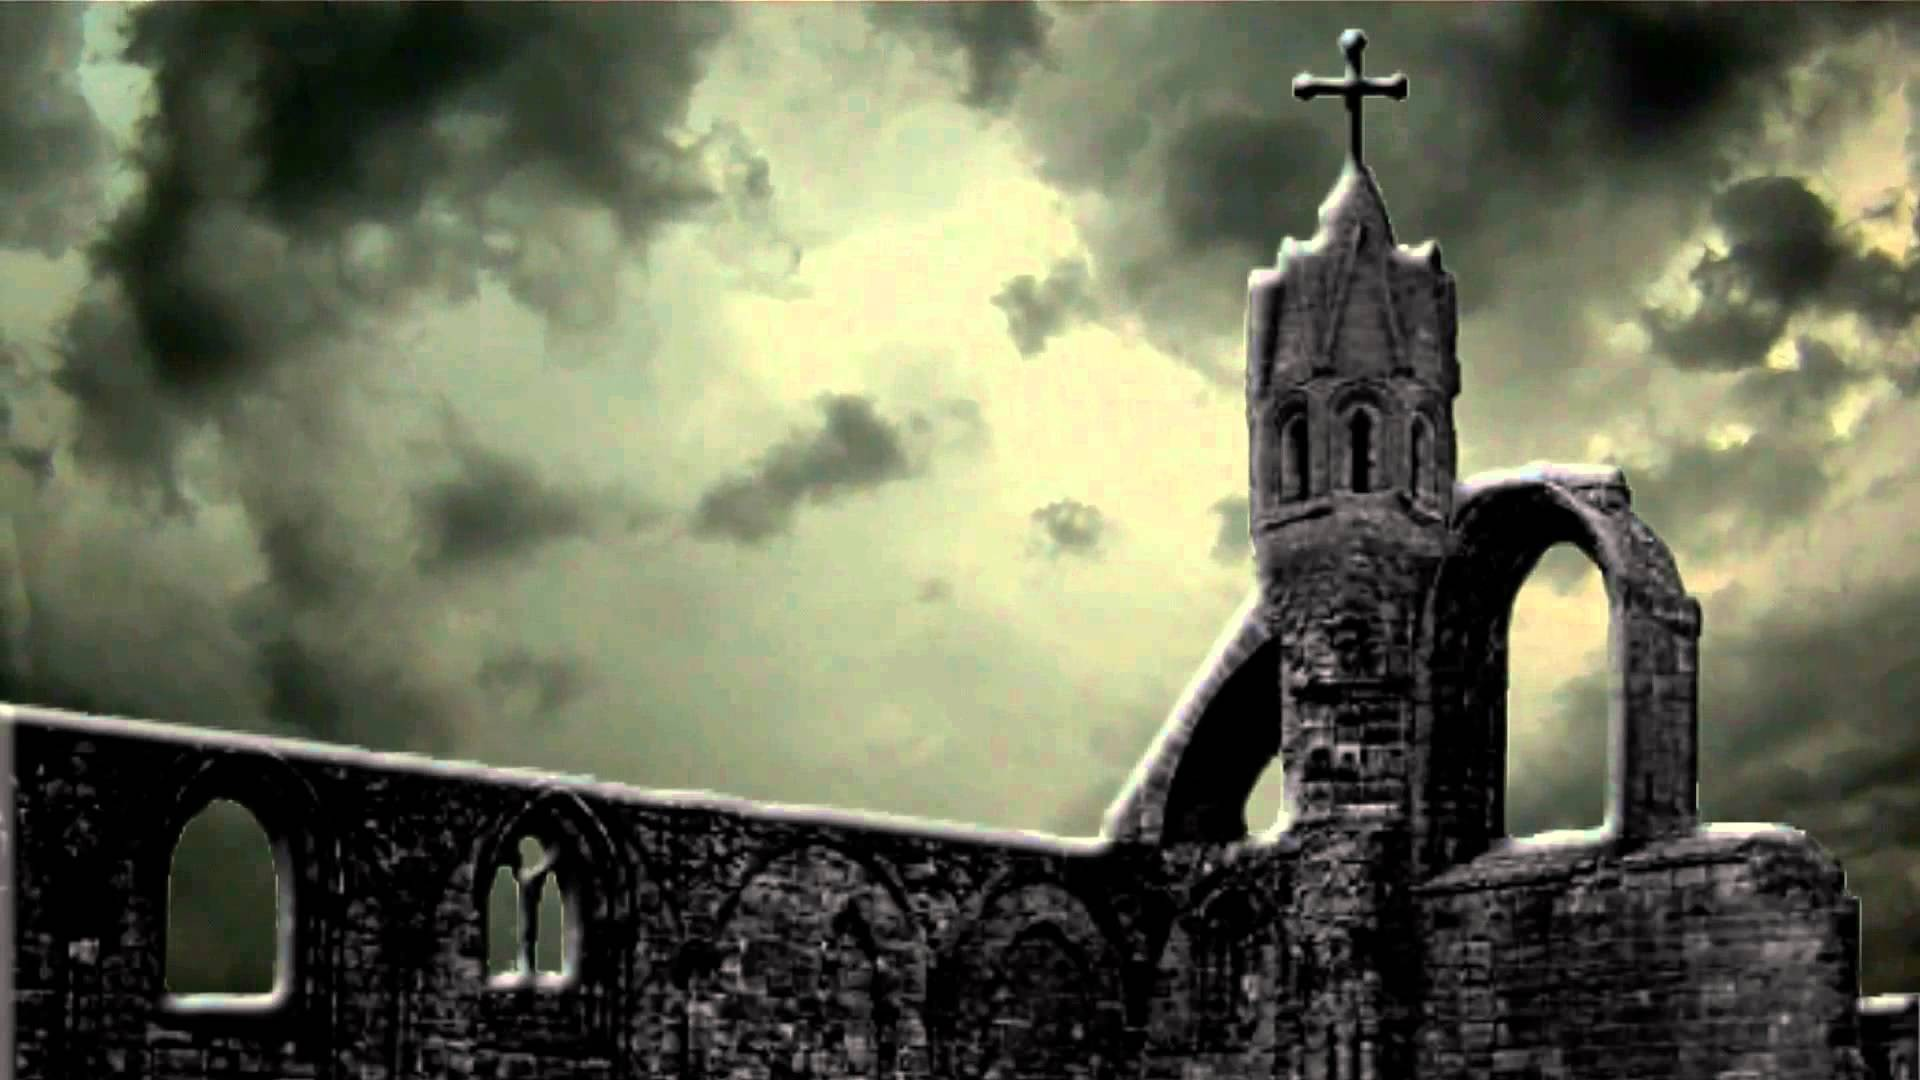 Church Background 183 ① Download Free Awesome Backgrounds For